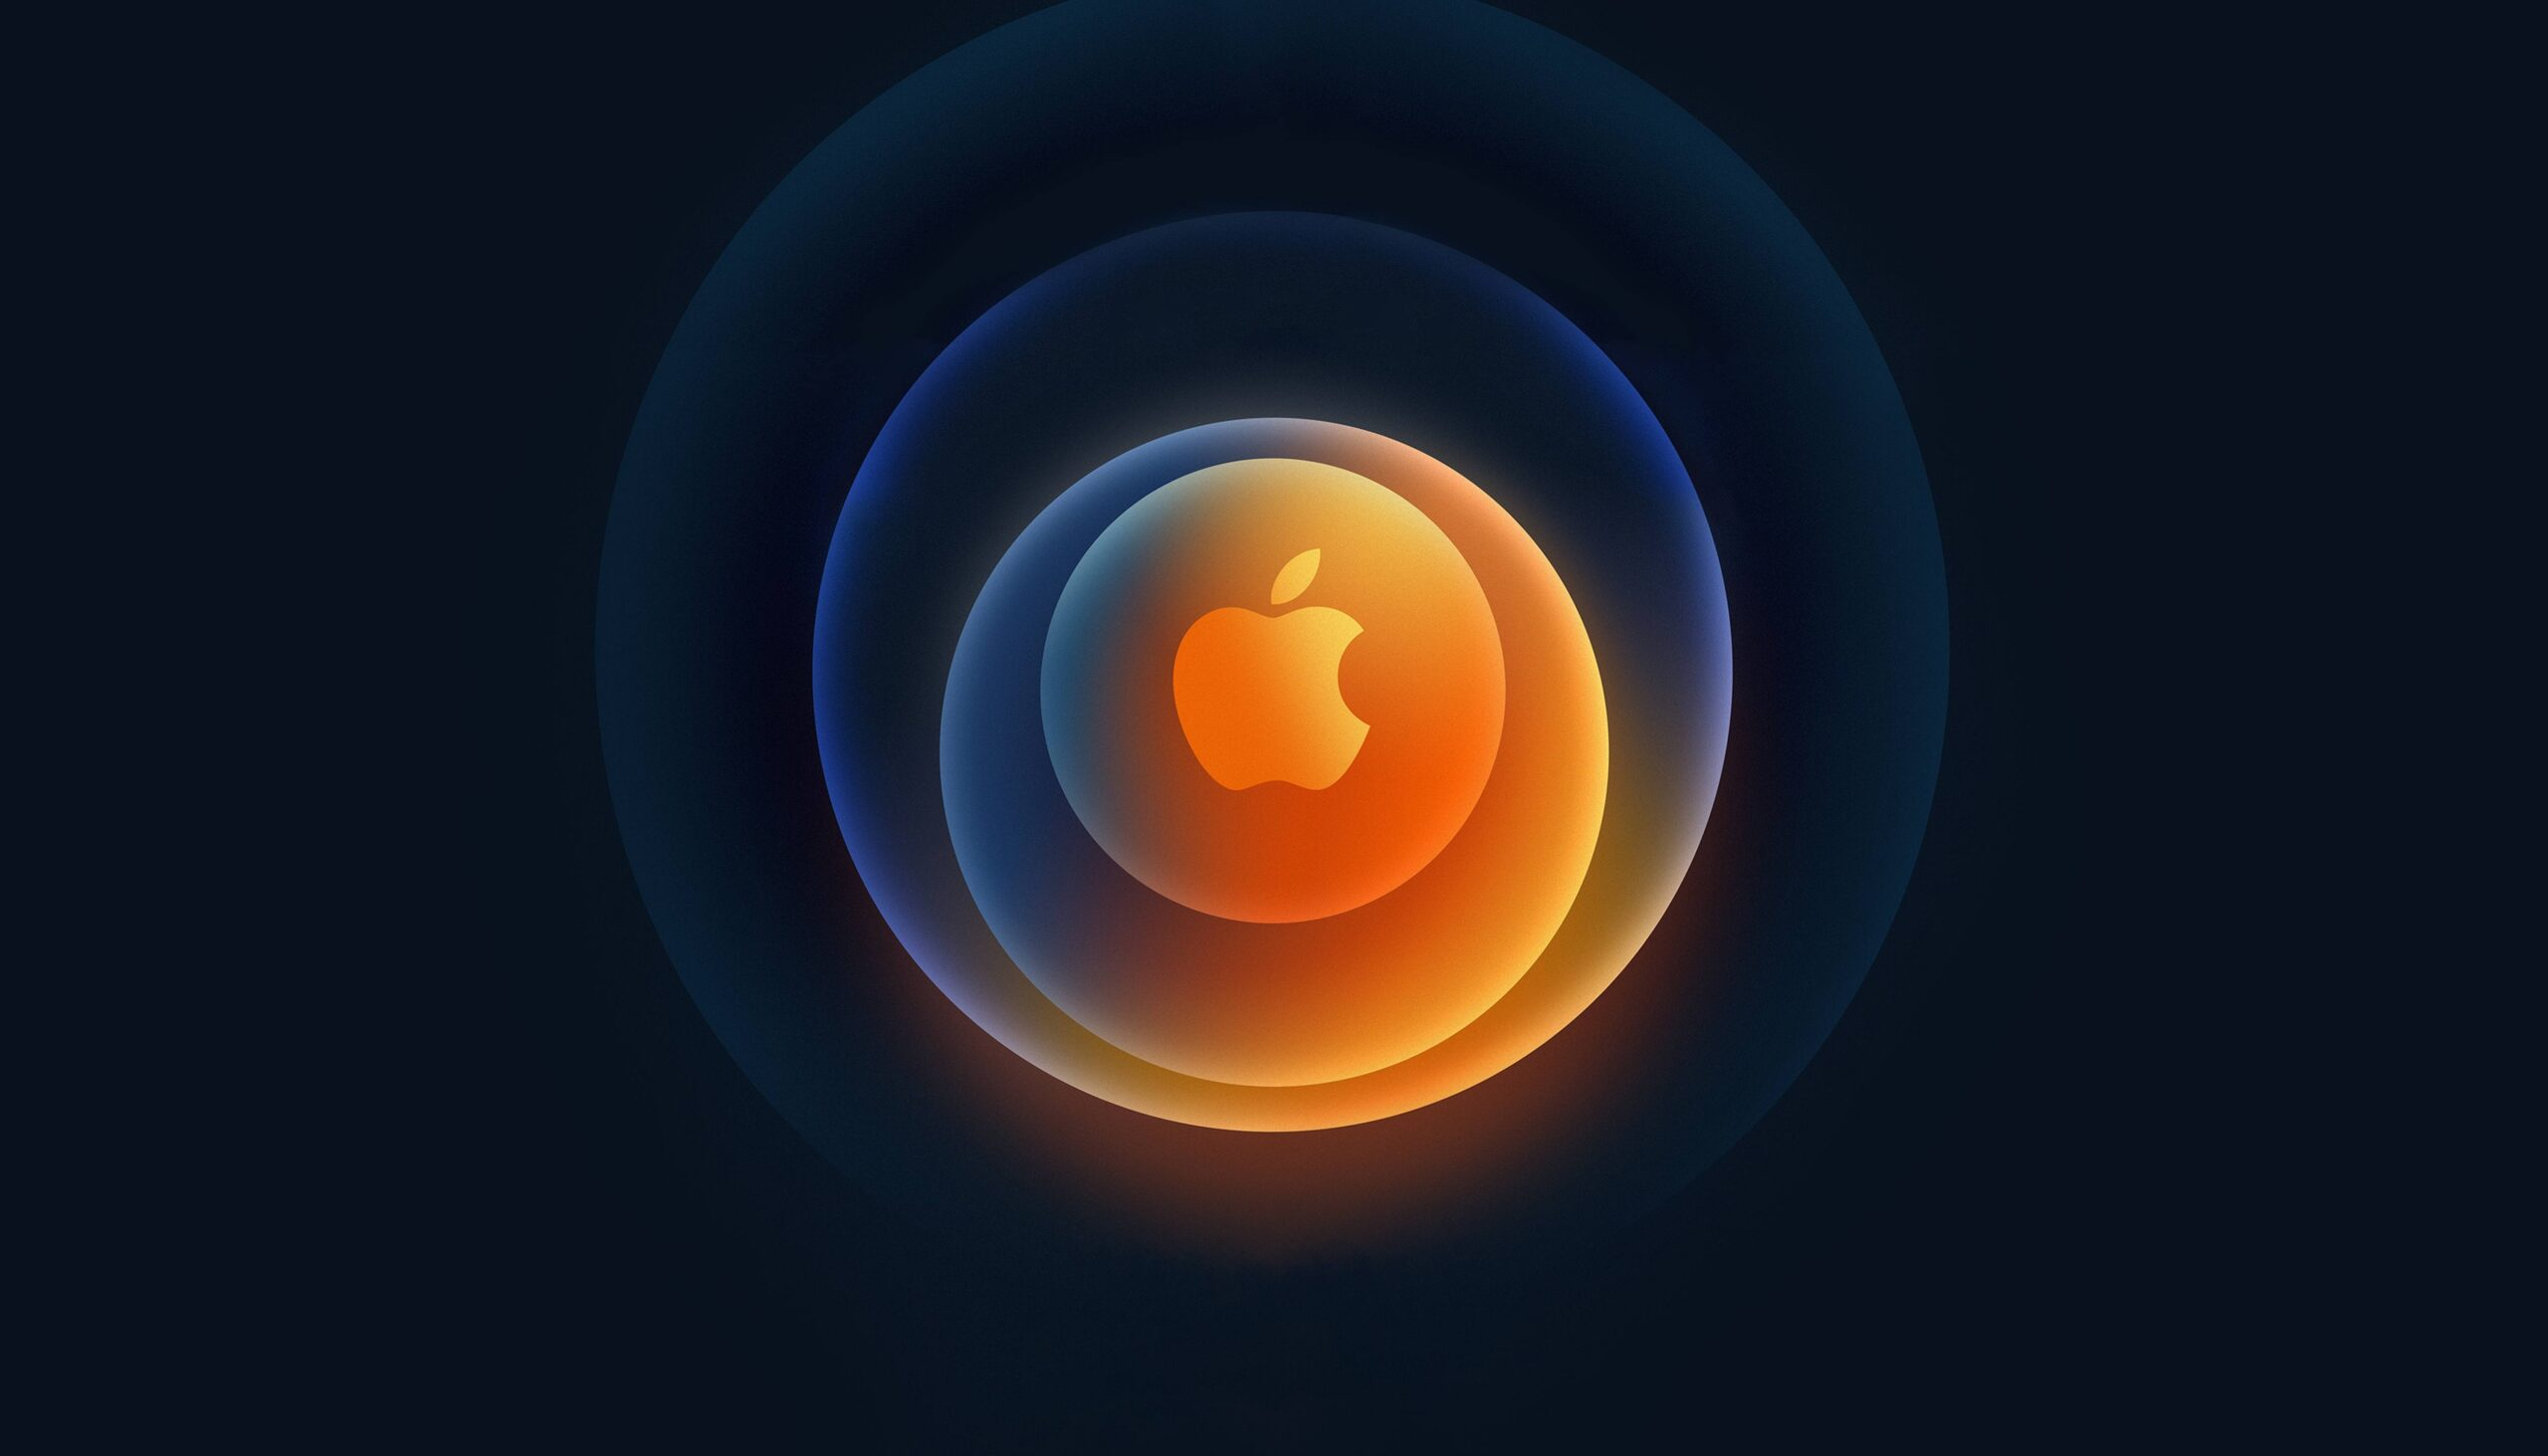 What To Expect From Apple's Oct 13th Event